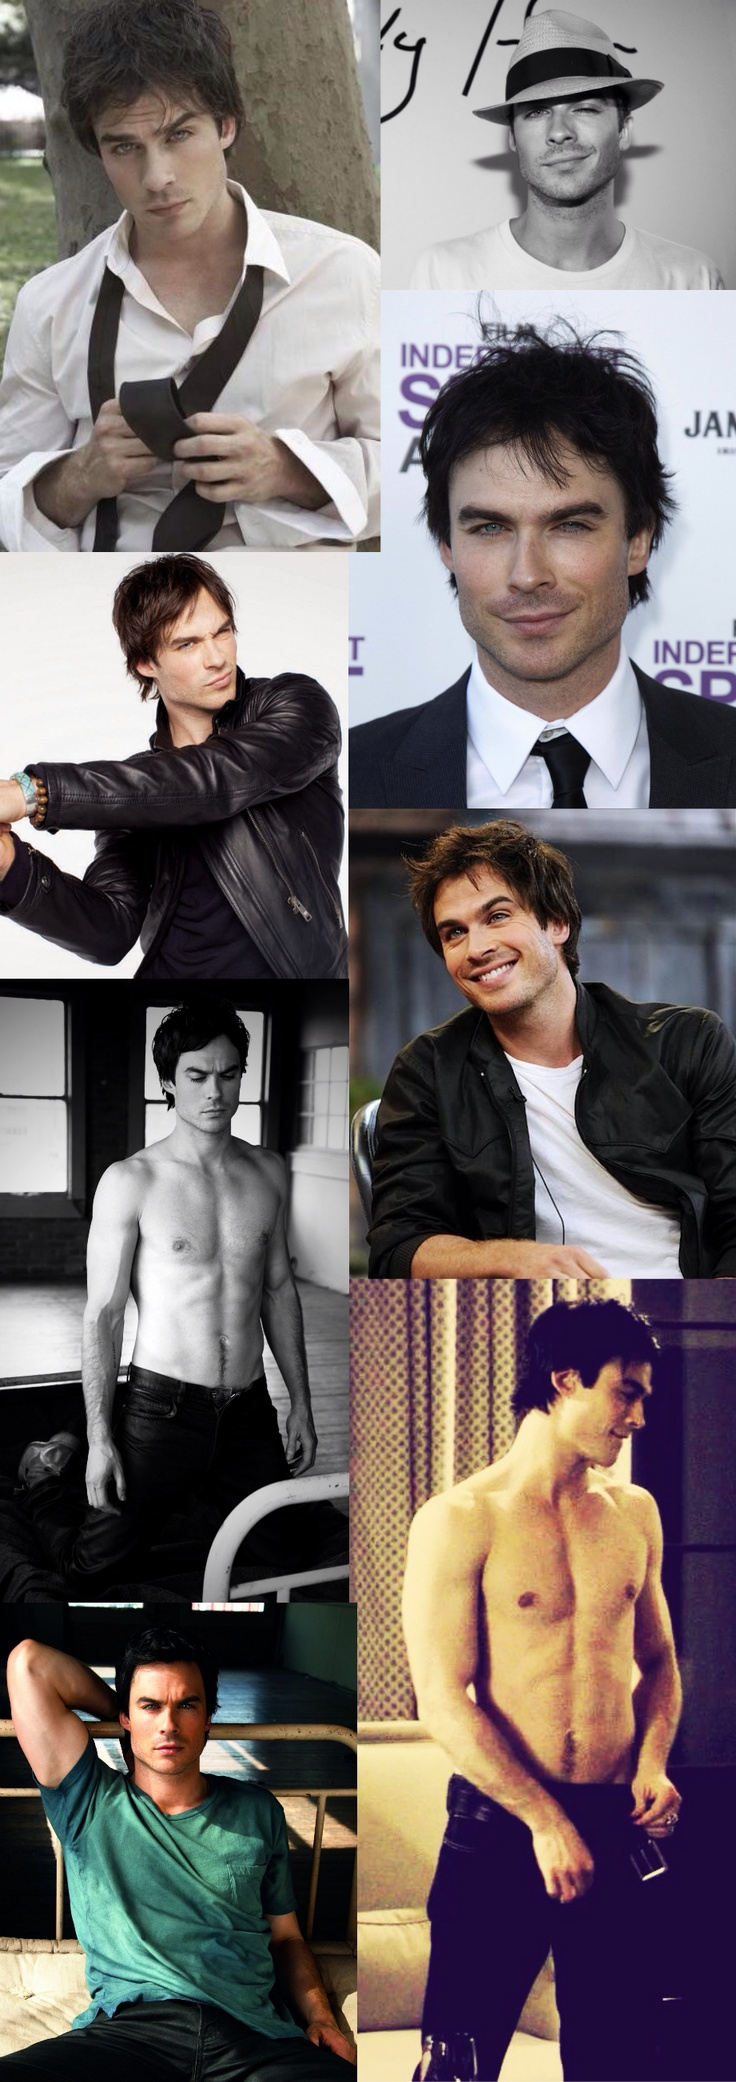 Ian Somerhalder... Occupation: Making everyone else look unattractive by comparison xP